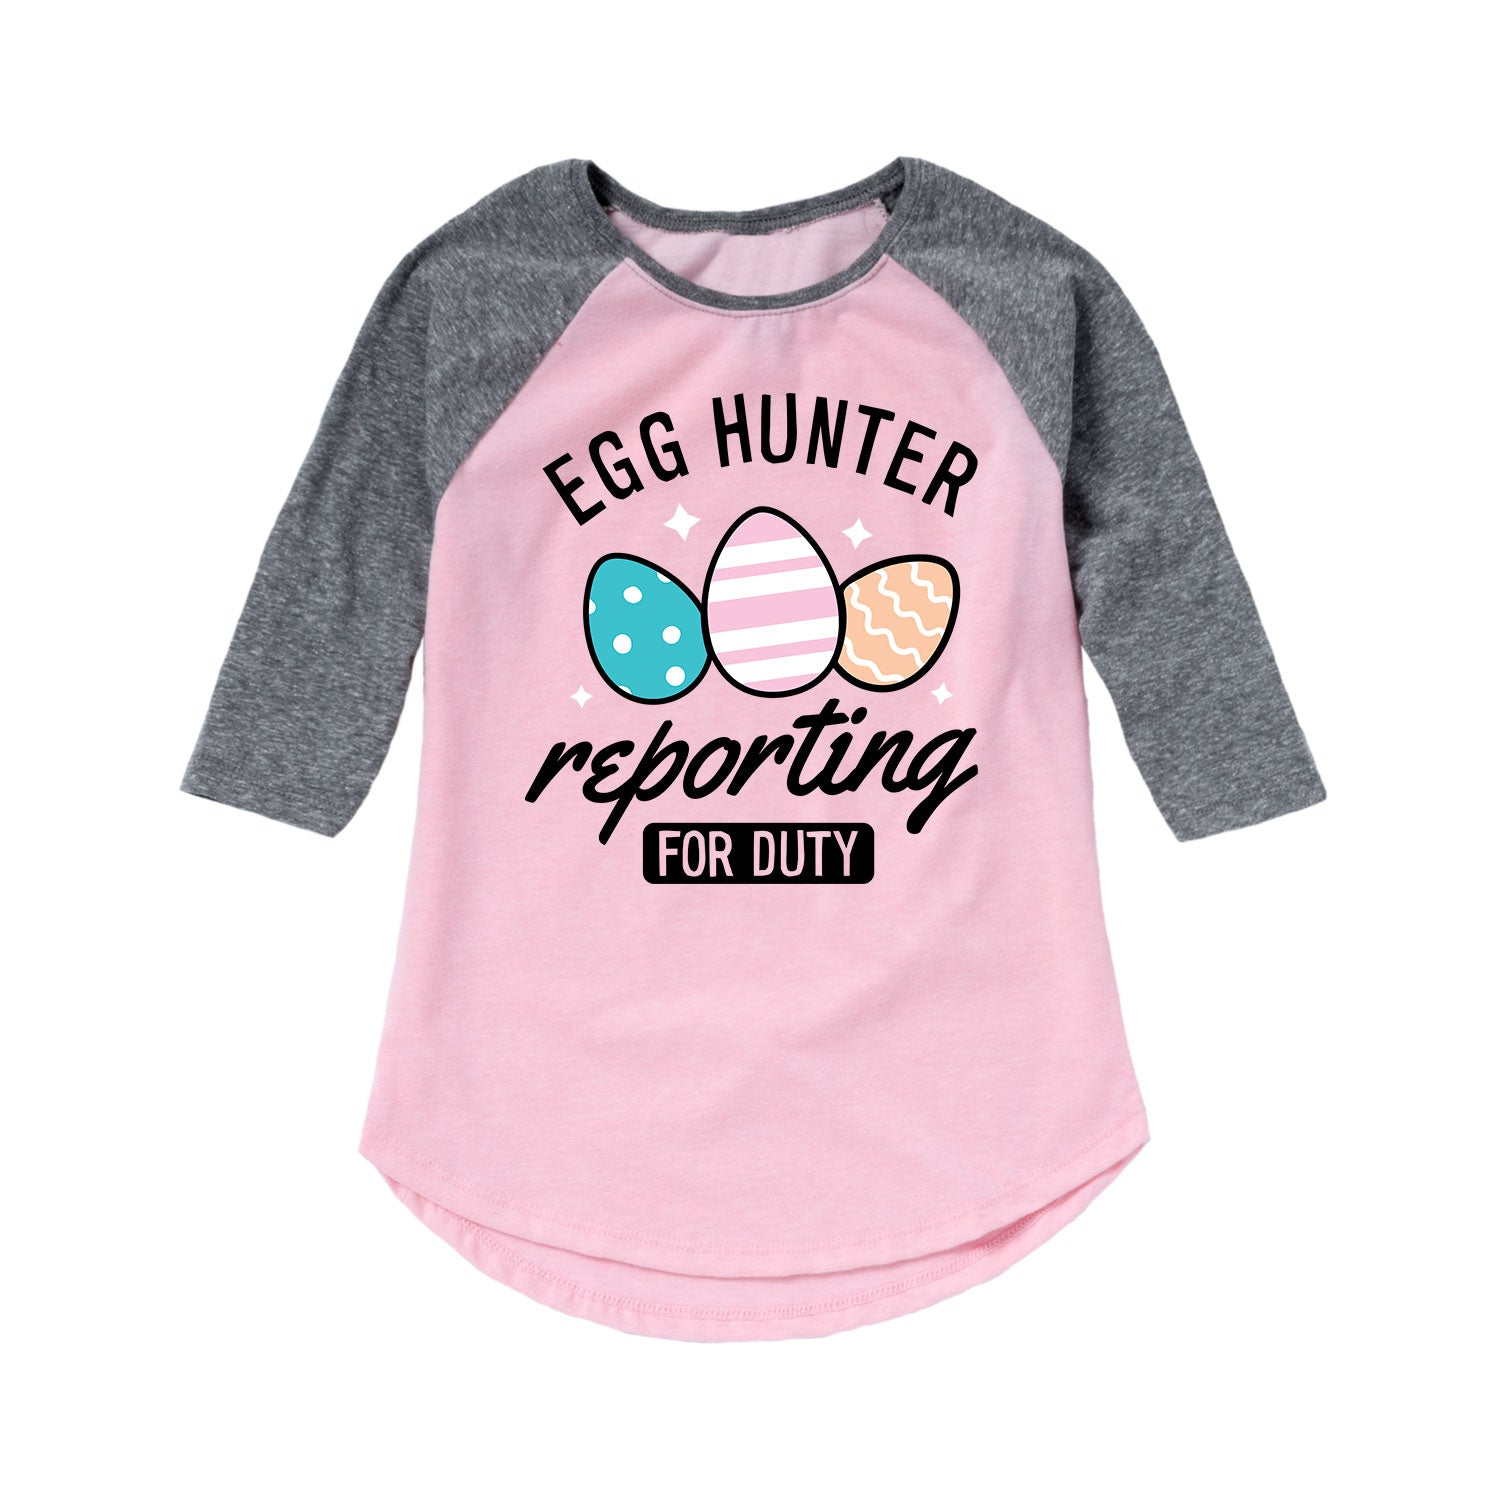 Egg Hunter Reporting for Duty - Youth Girl Raglan